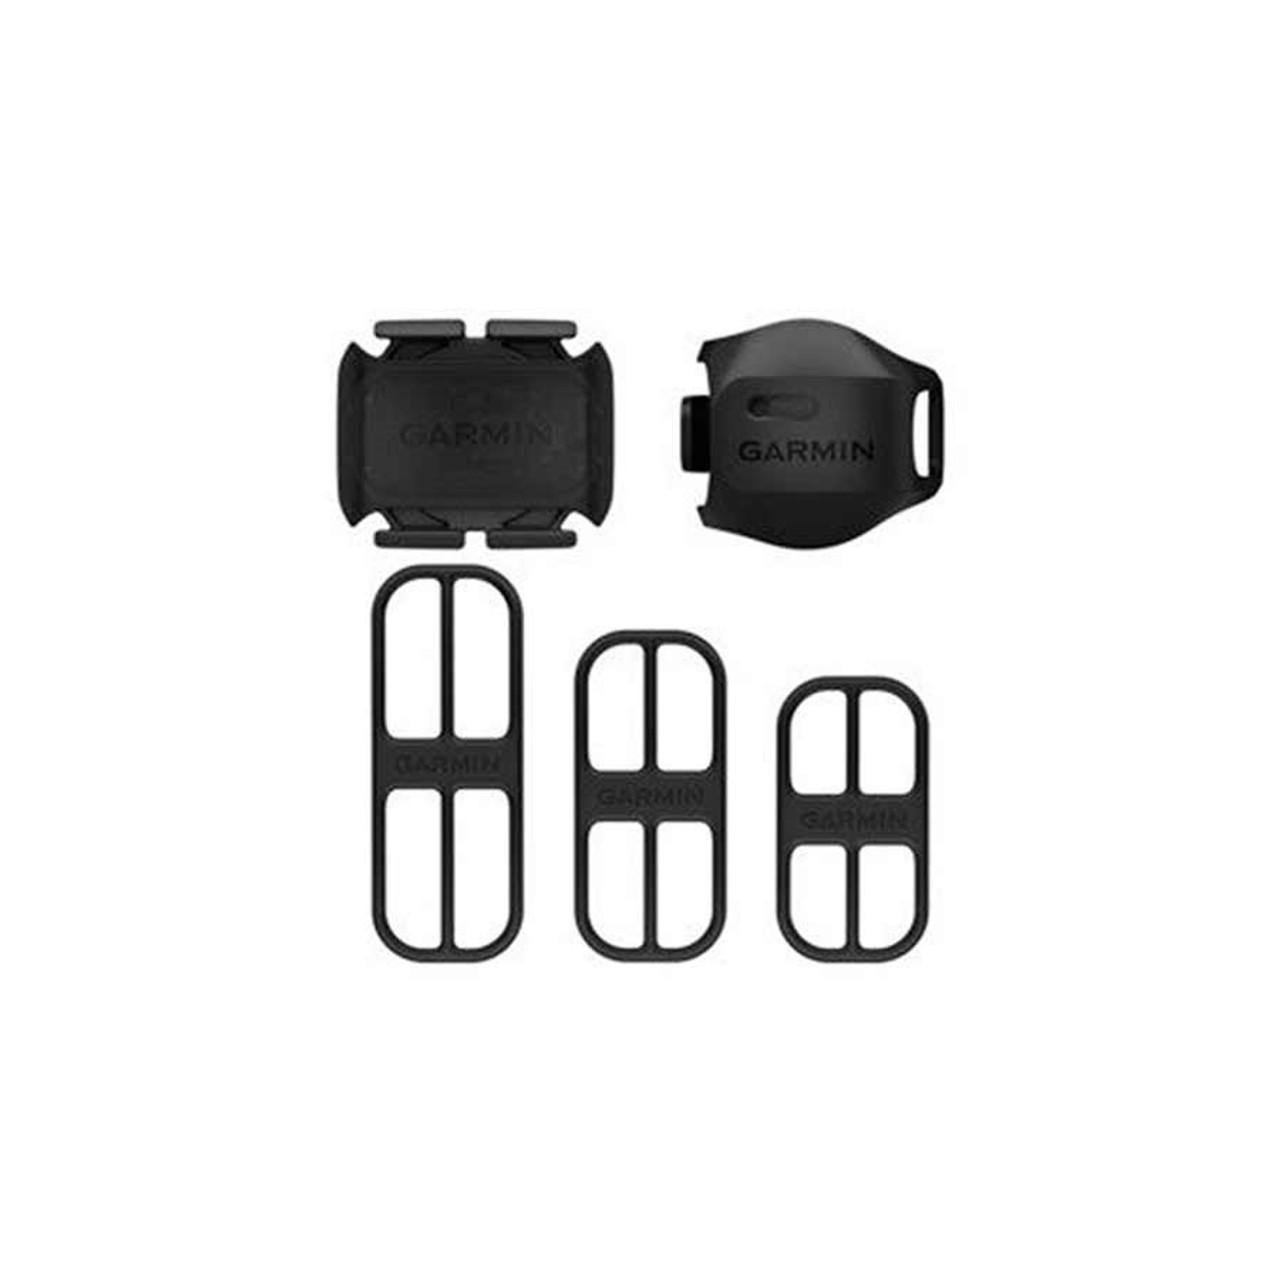 Garmin Speed and Cadence Bike Sensor Replacement Parts